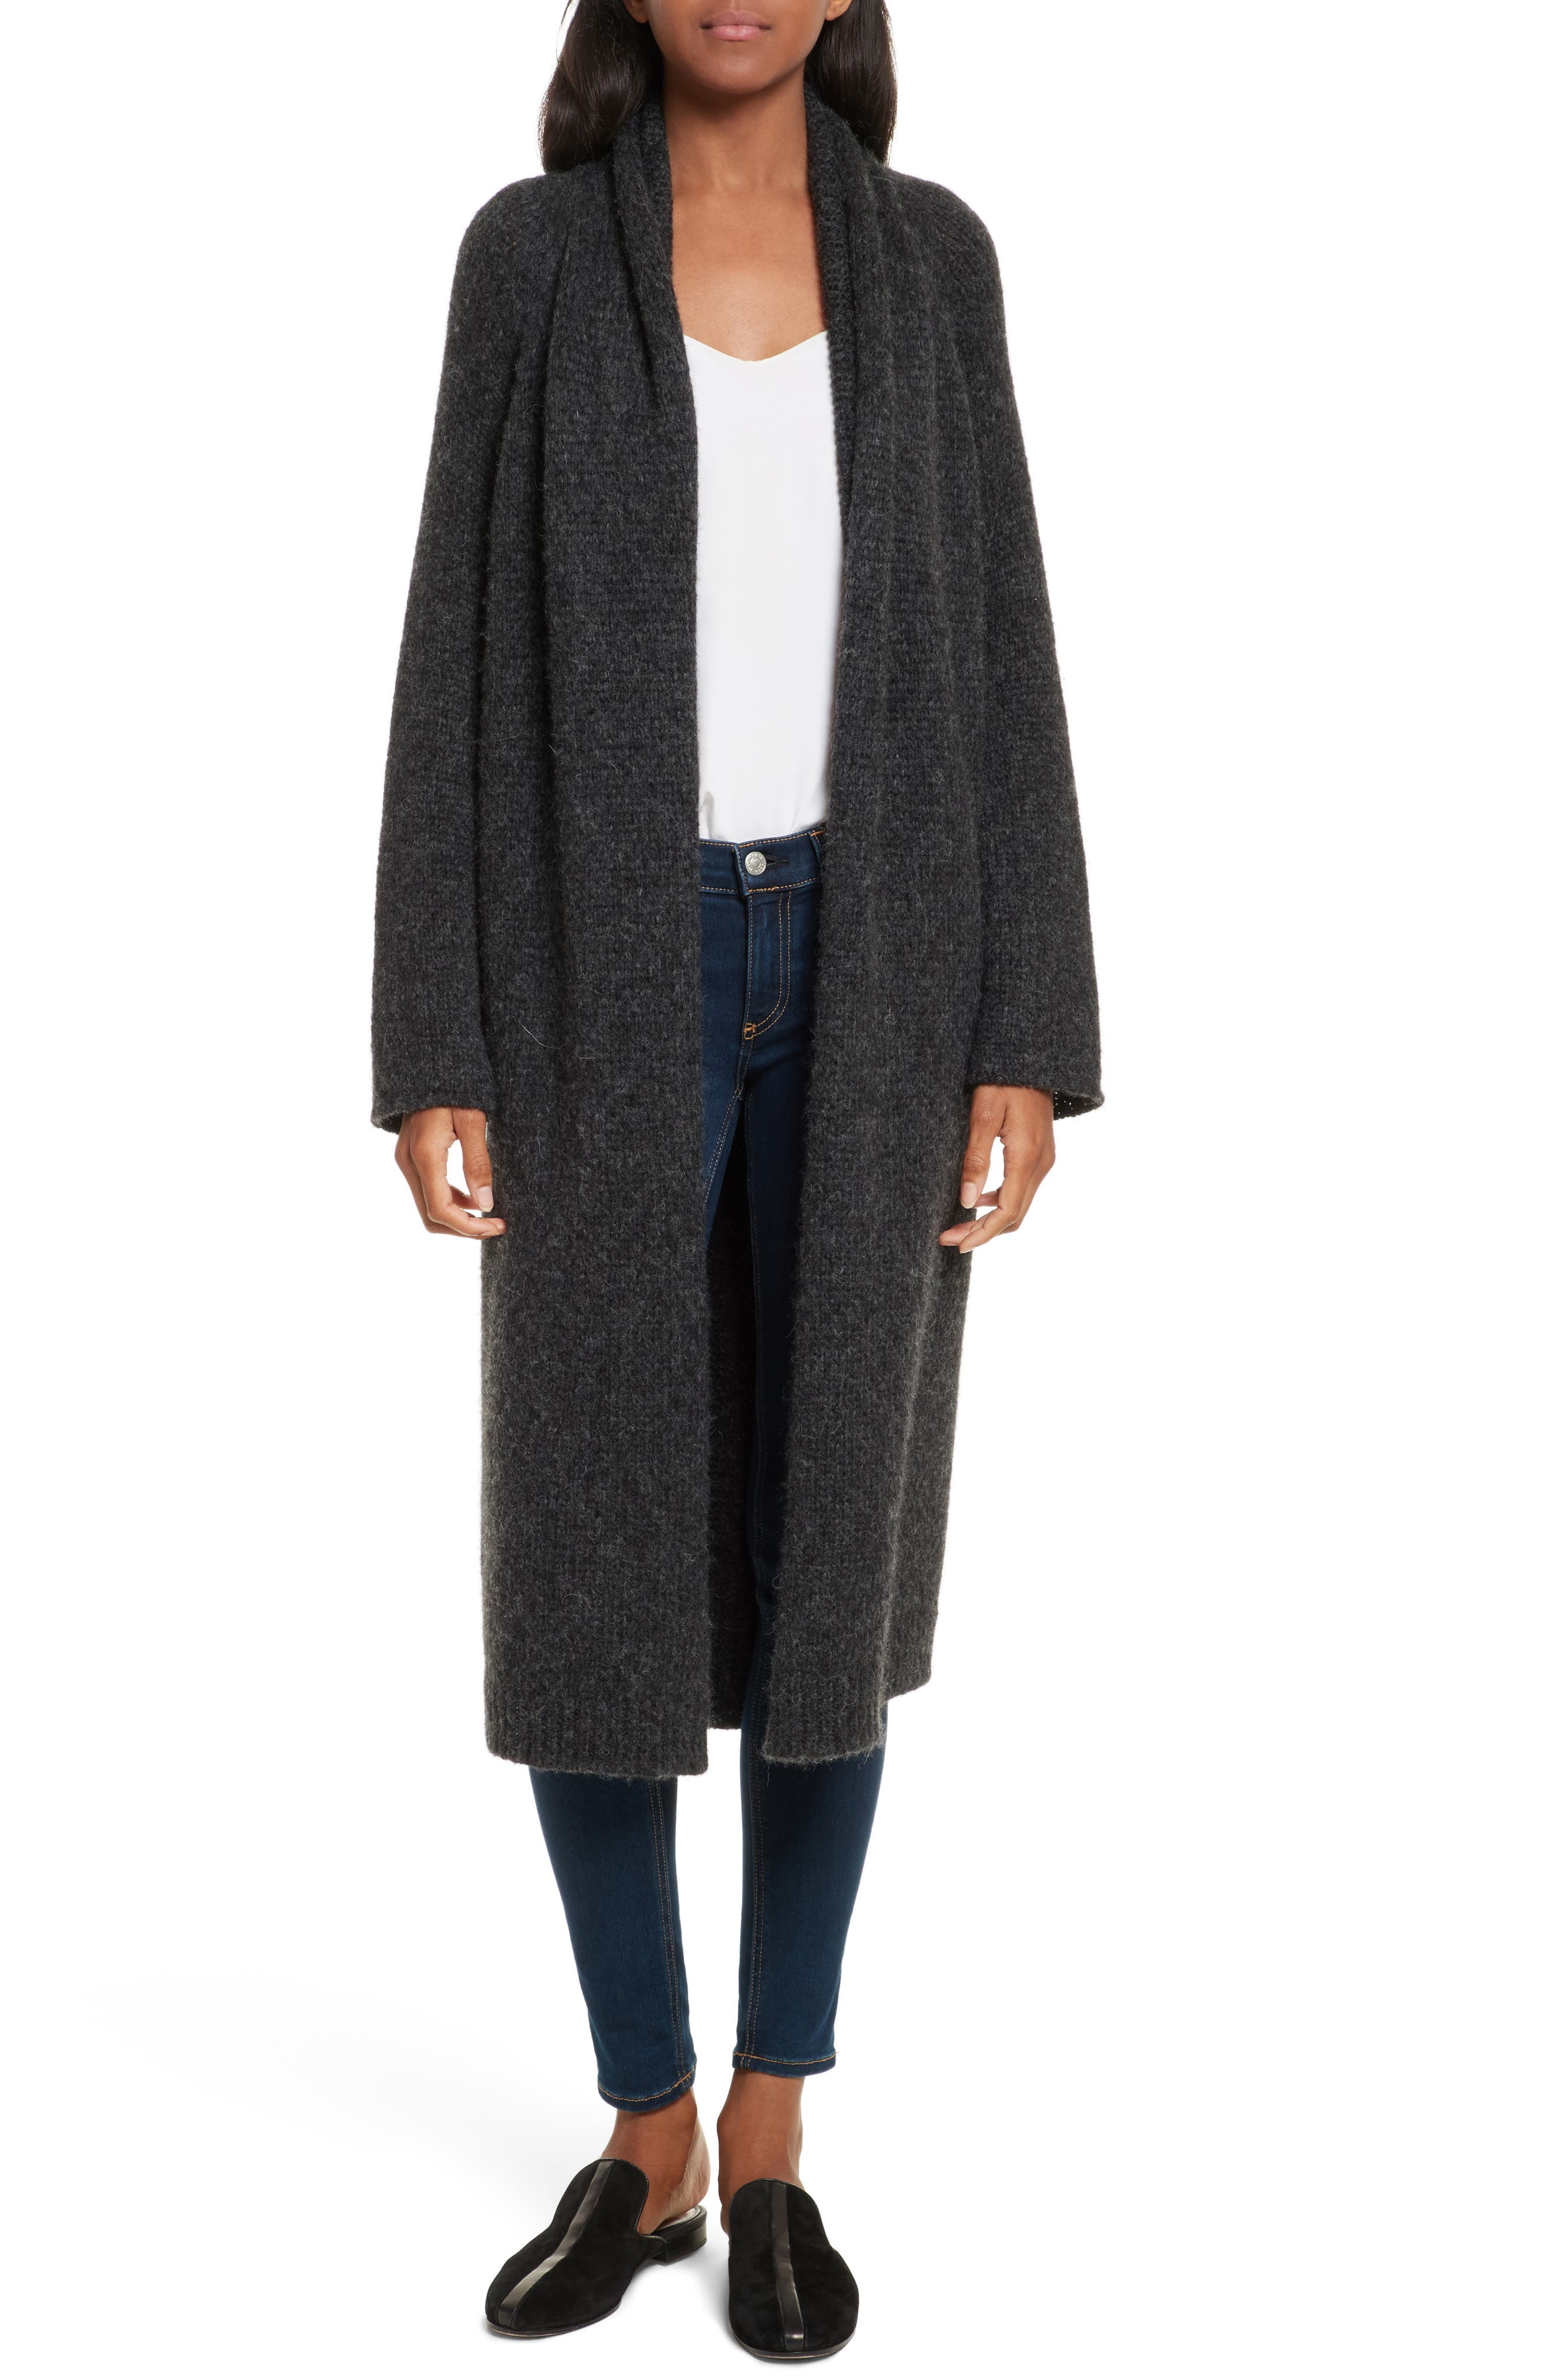 Joie Myrtice Open Front Long Cardigan